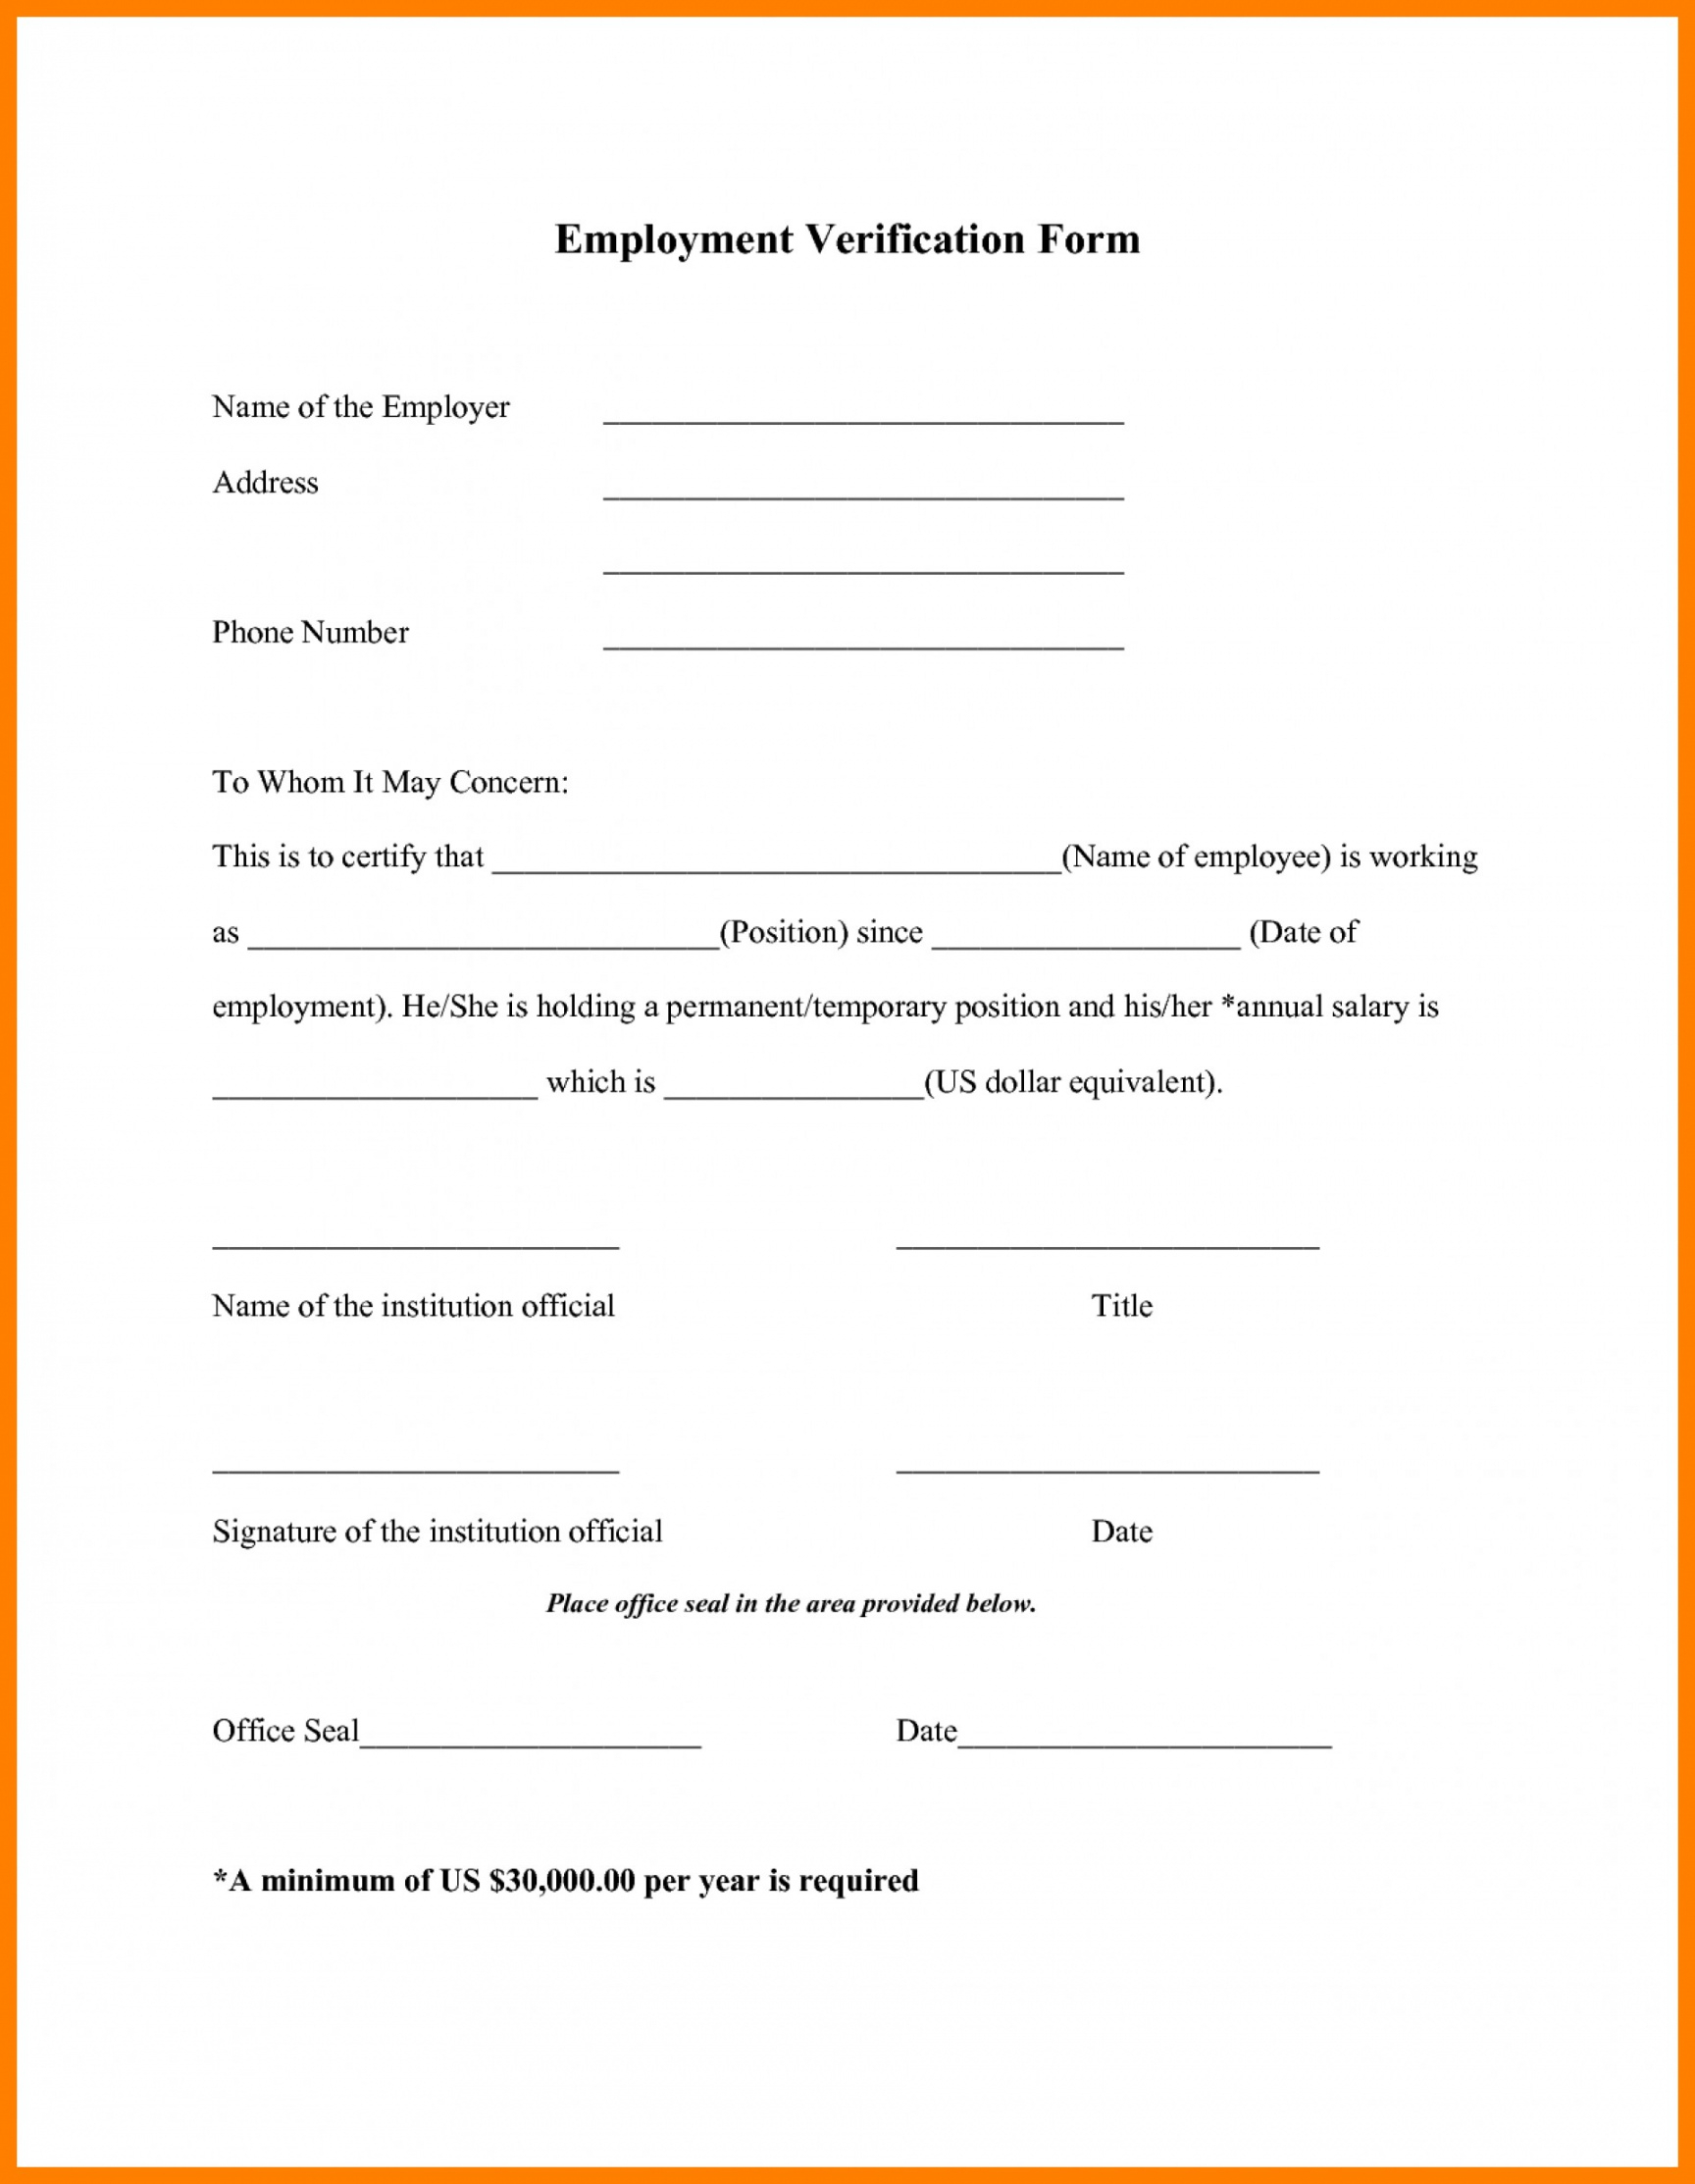 029 Verification Of Employment Template Ideas Printable Form